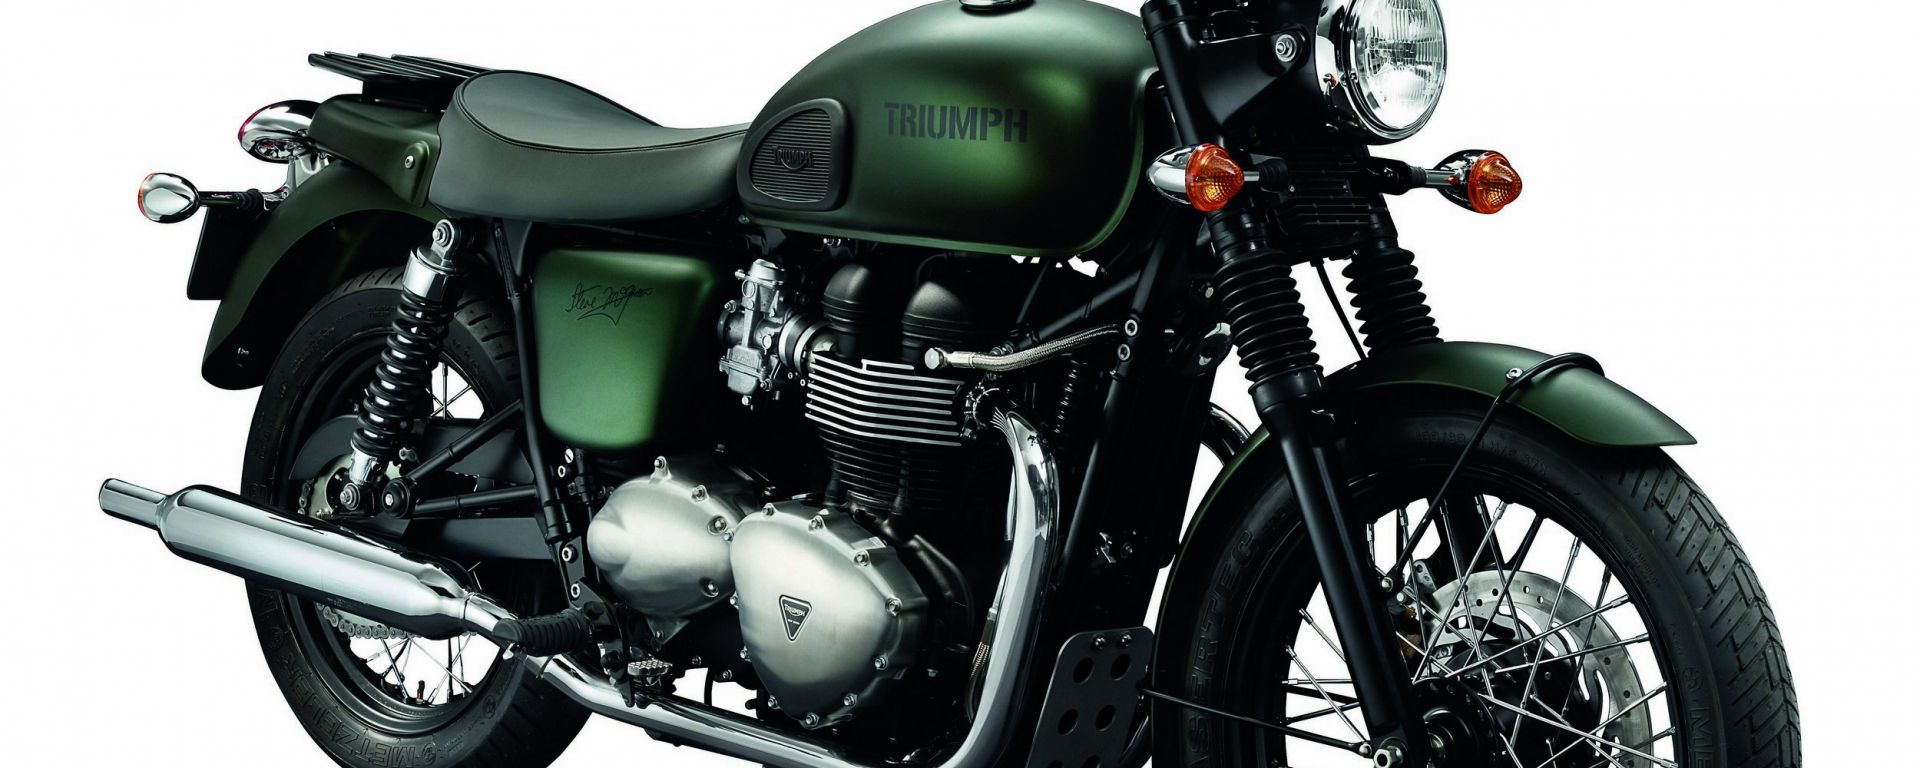 Triumph Bonneville Steve Mc Queen Edition